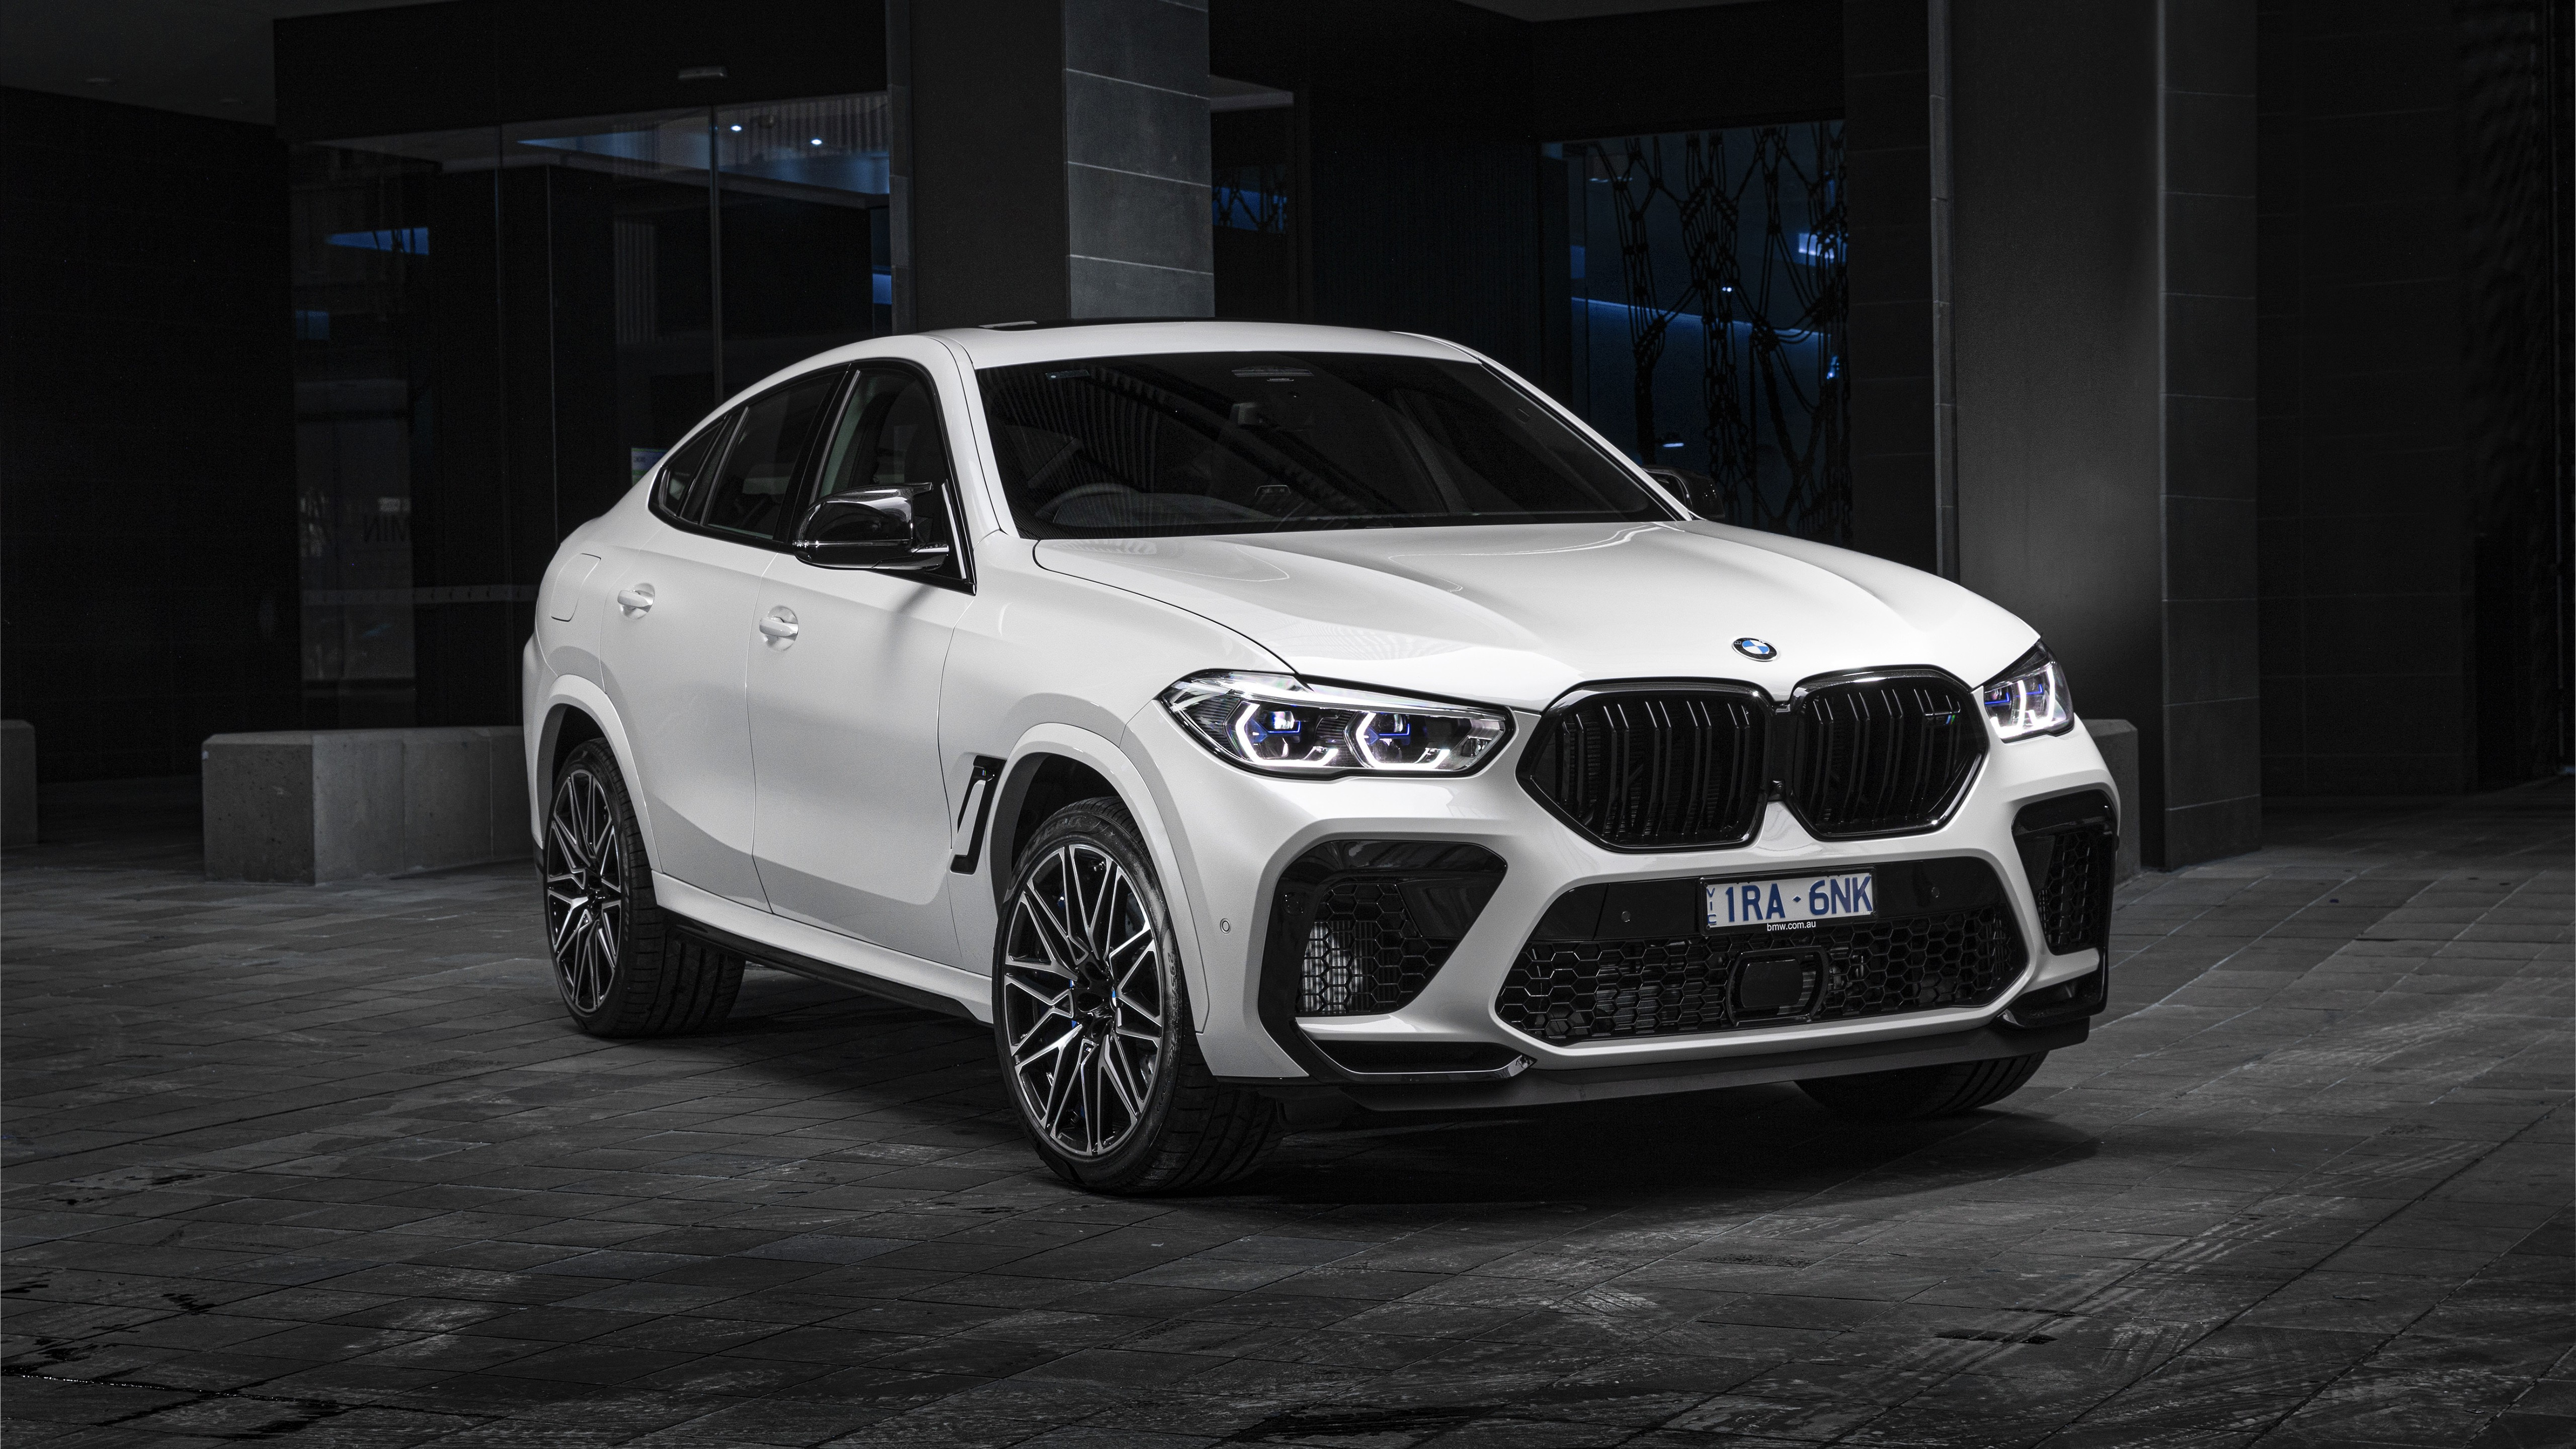 BMW X6 M Competition 2020 5K Wallpaper | HD Car Wallpapers ...